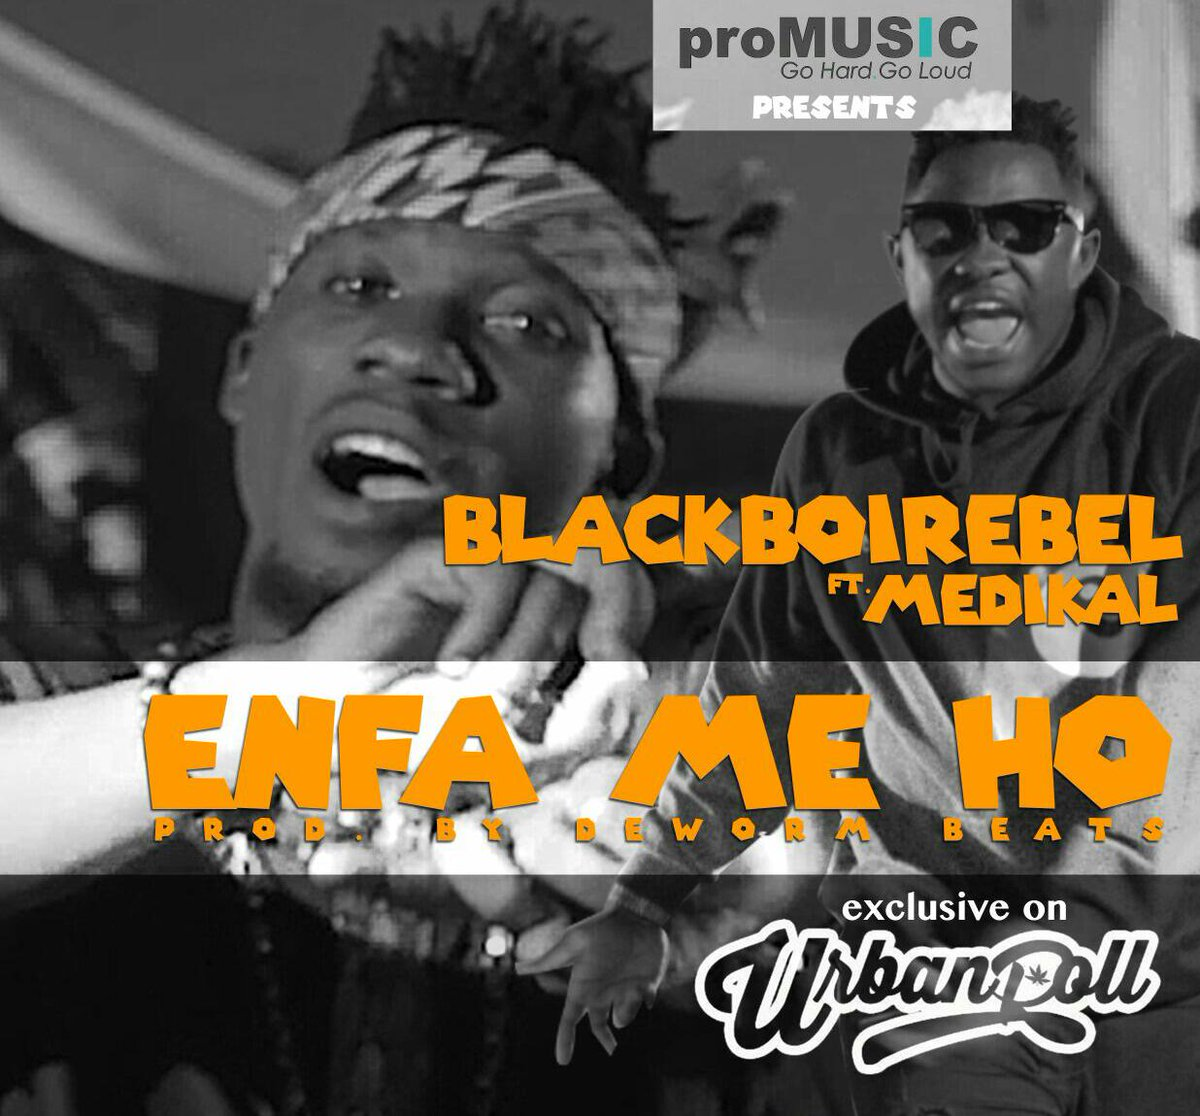 @ThablackboiGh feat @AmgMedikal – 3nfaMeHo (prod by Deworm Beats) https://t.co/iEEct0txLg https://t.co/uel10ZU7OL